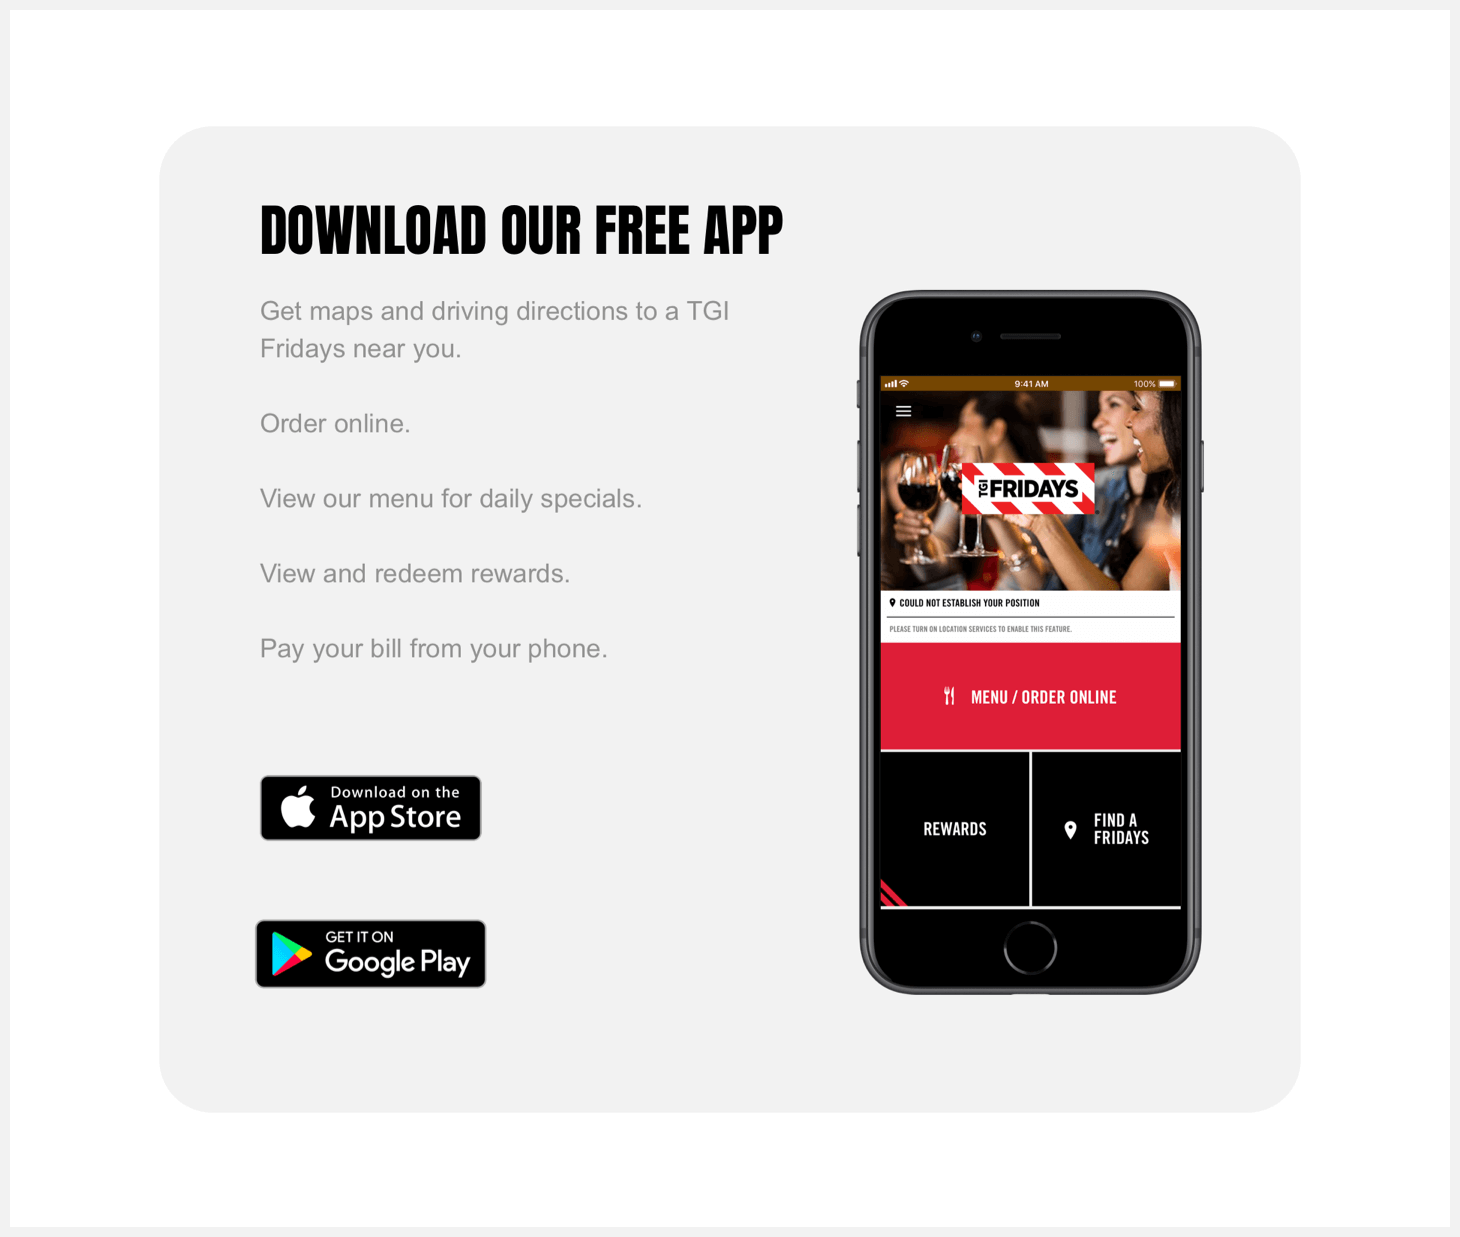 Section 7 redesign concept of TGI Fridays' website.